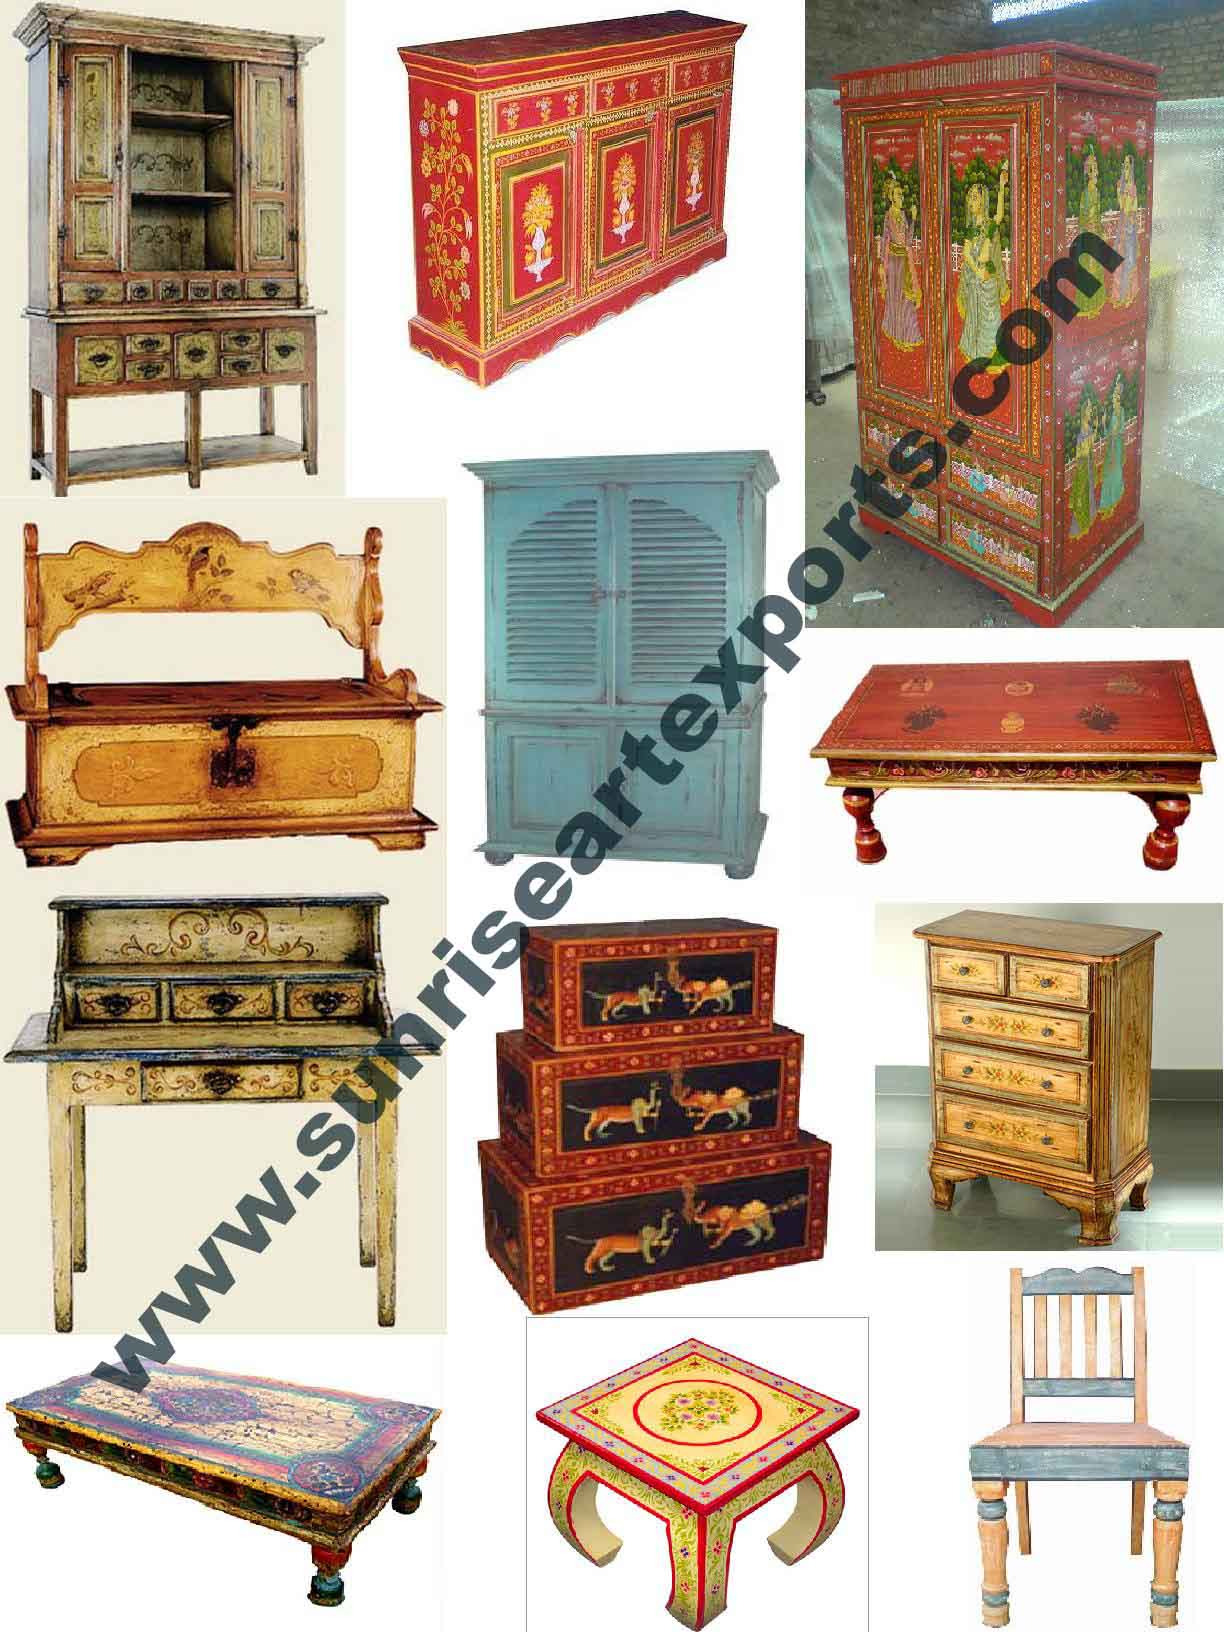 Cheap Antique Furniture for Sale Inspirational Hand Painted Furniture Antique Reproduction Furniture Handmade Painting Indian Distress Furniture White Paint Furniture Buy Antique Reproduction